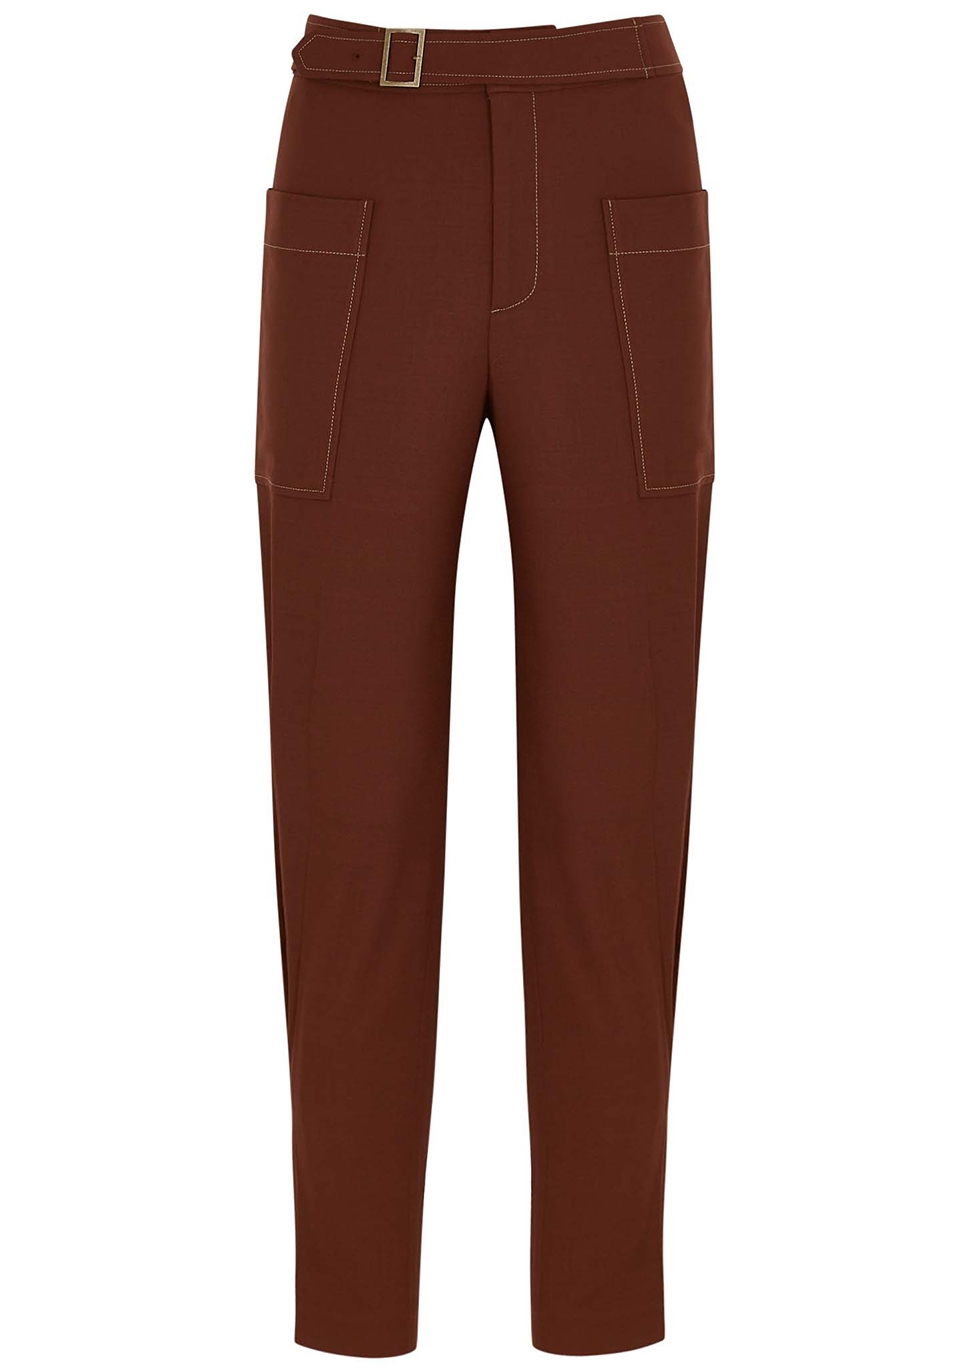 Maxine brown tapered twill trousers